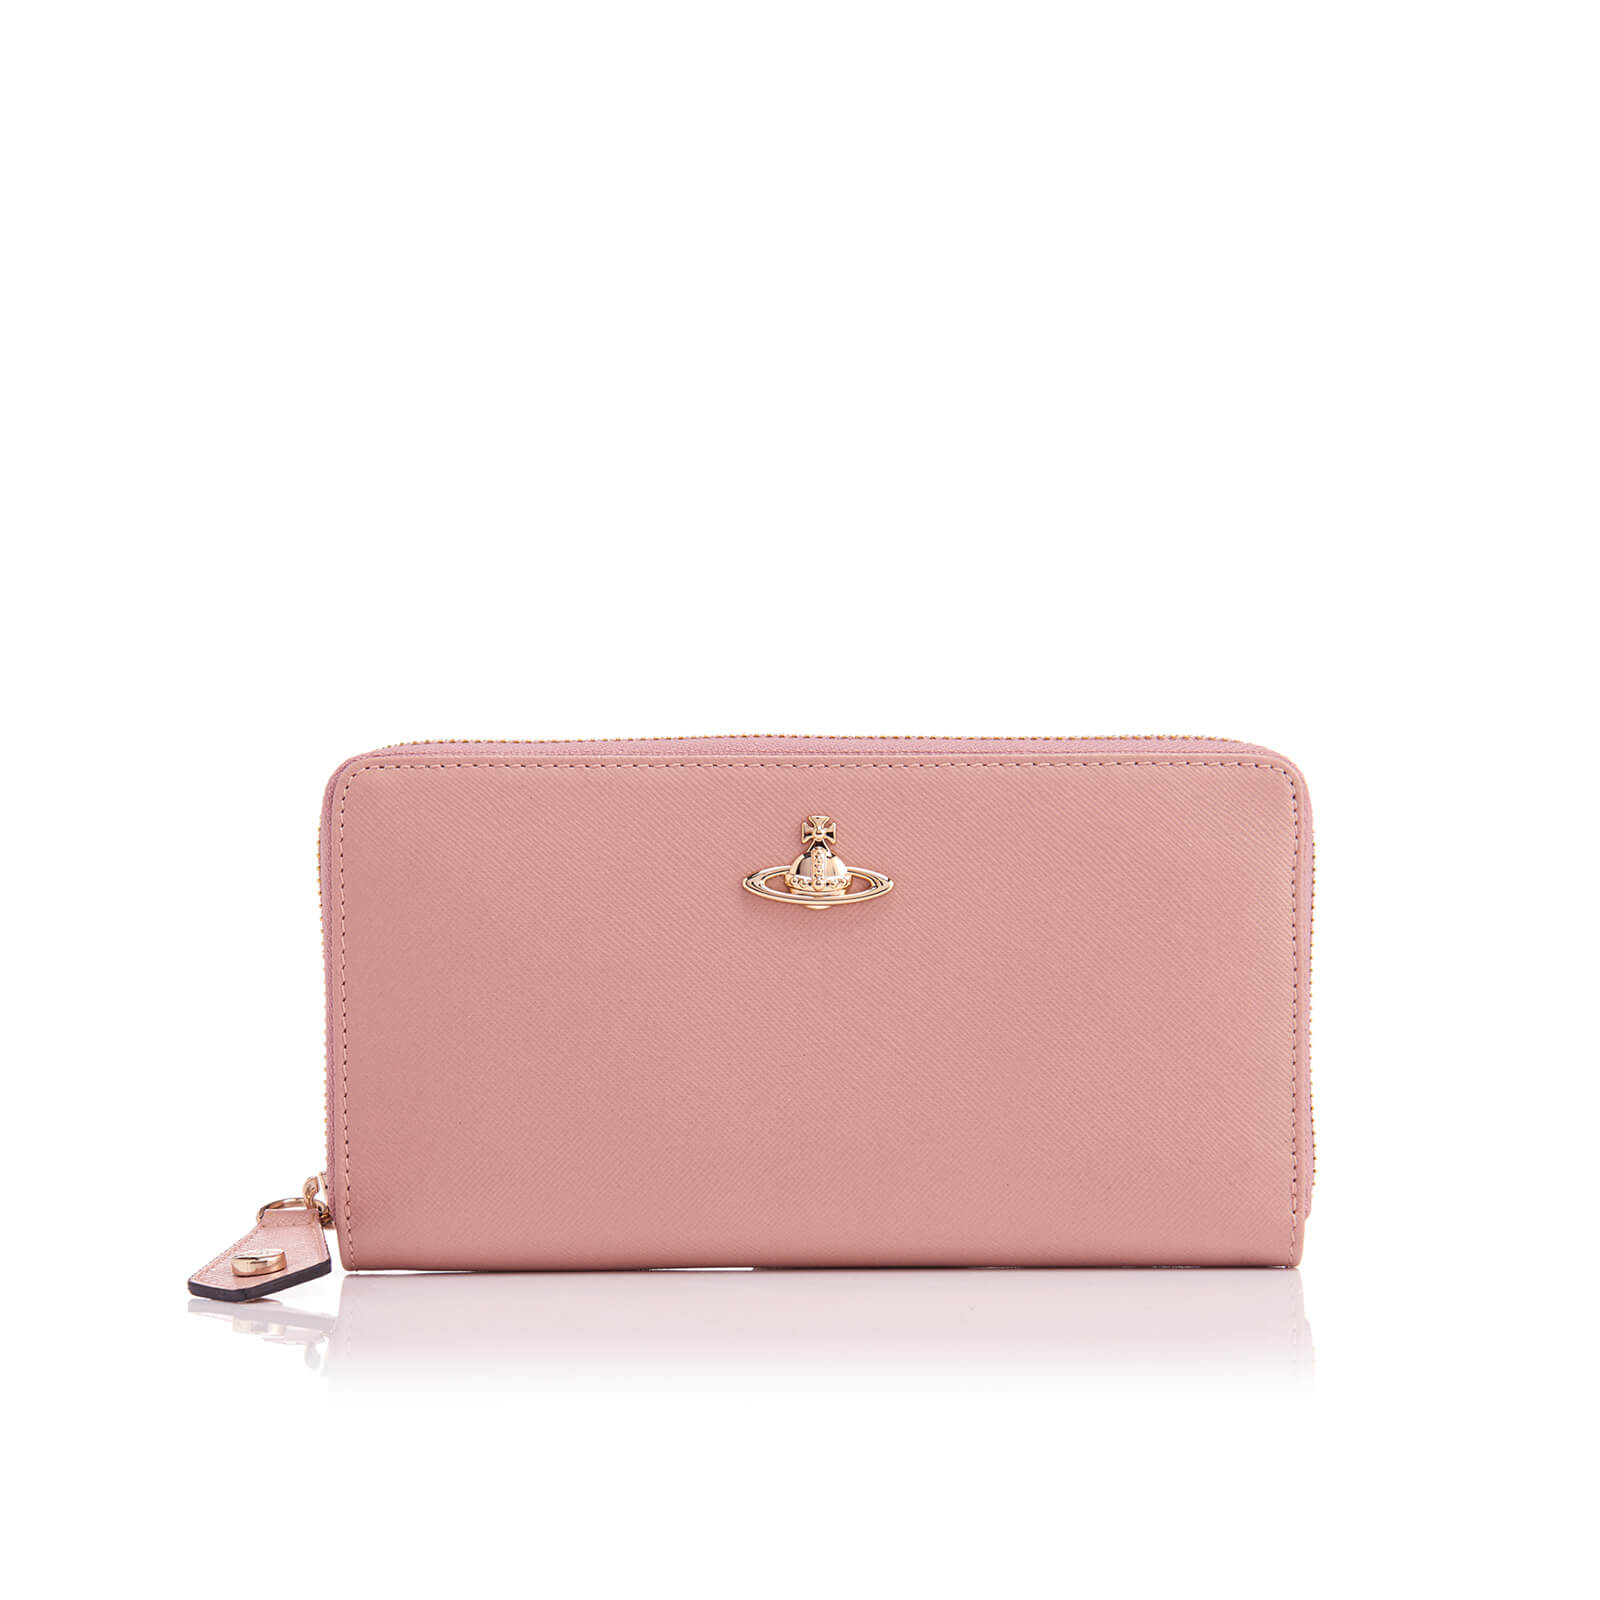 13f2399265d Vivienne Westwood Women's Opio Saffiano Leather Zip Around Wallet - Pink -  Free UK Delivery over £50